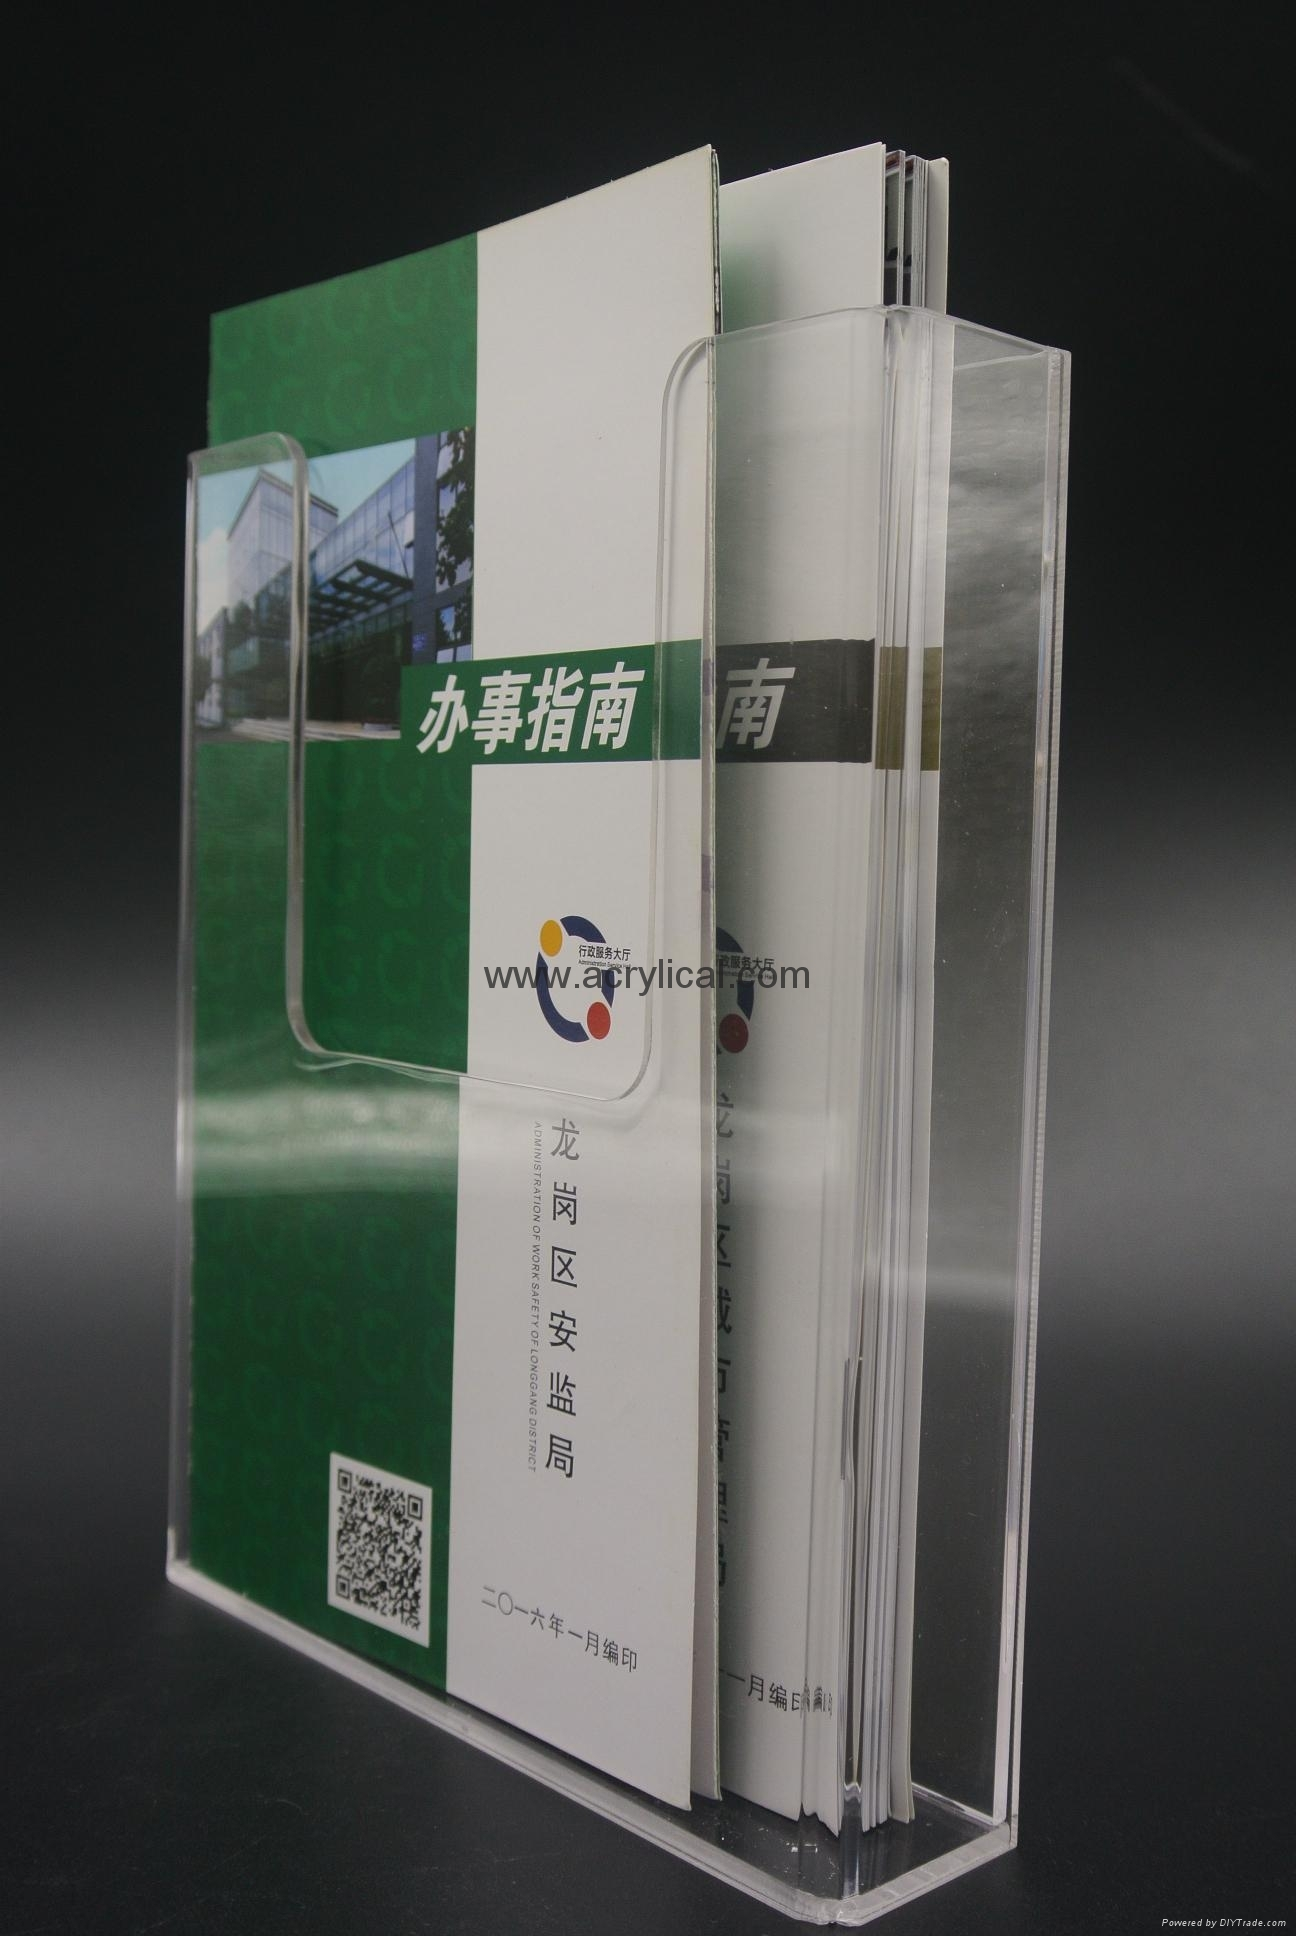 Wholesale acrylic brochure holder newspaper display stand,Custom Acrylic Brochure Holder Acrylic Display Stand Factory,a4 acrylic display stand,acrylic brochure holder,Acrylic Magazine Rack,Acrylic Magazine Display Stand